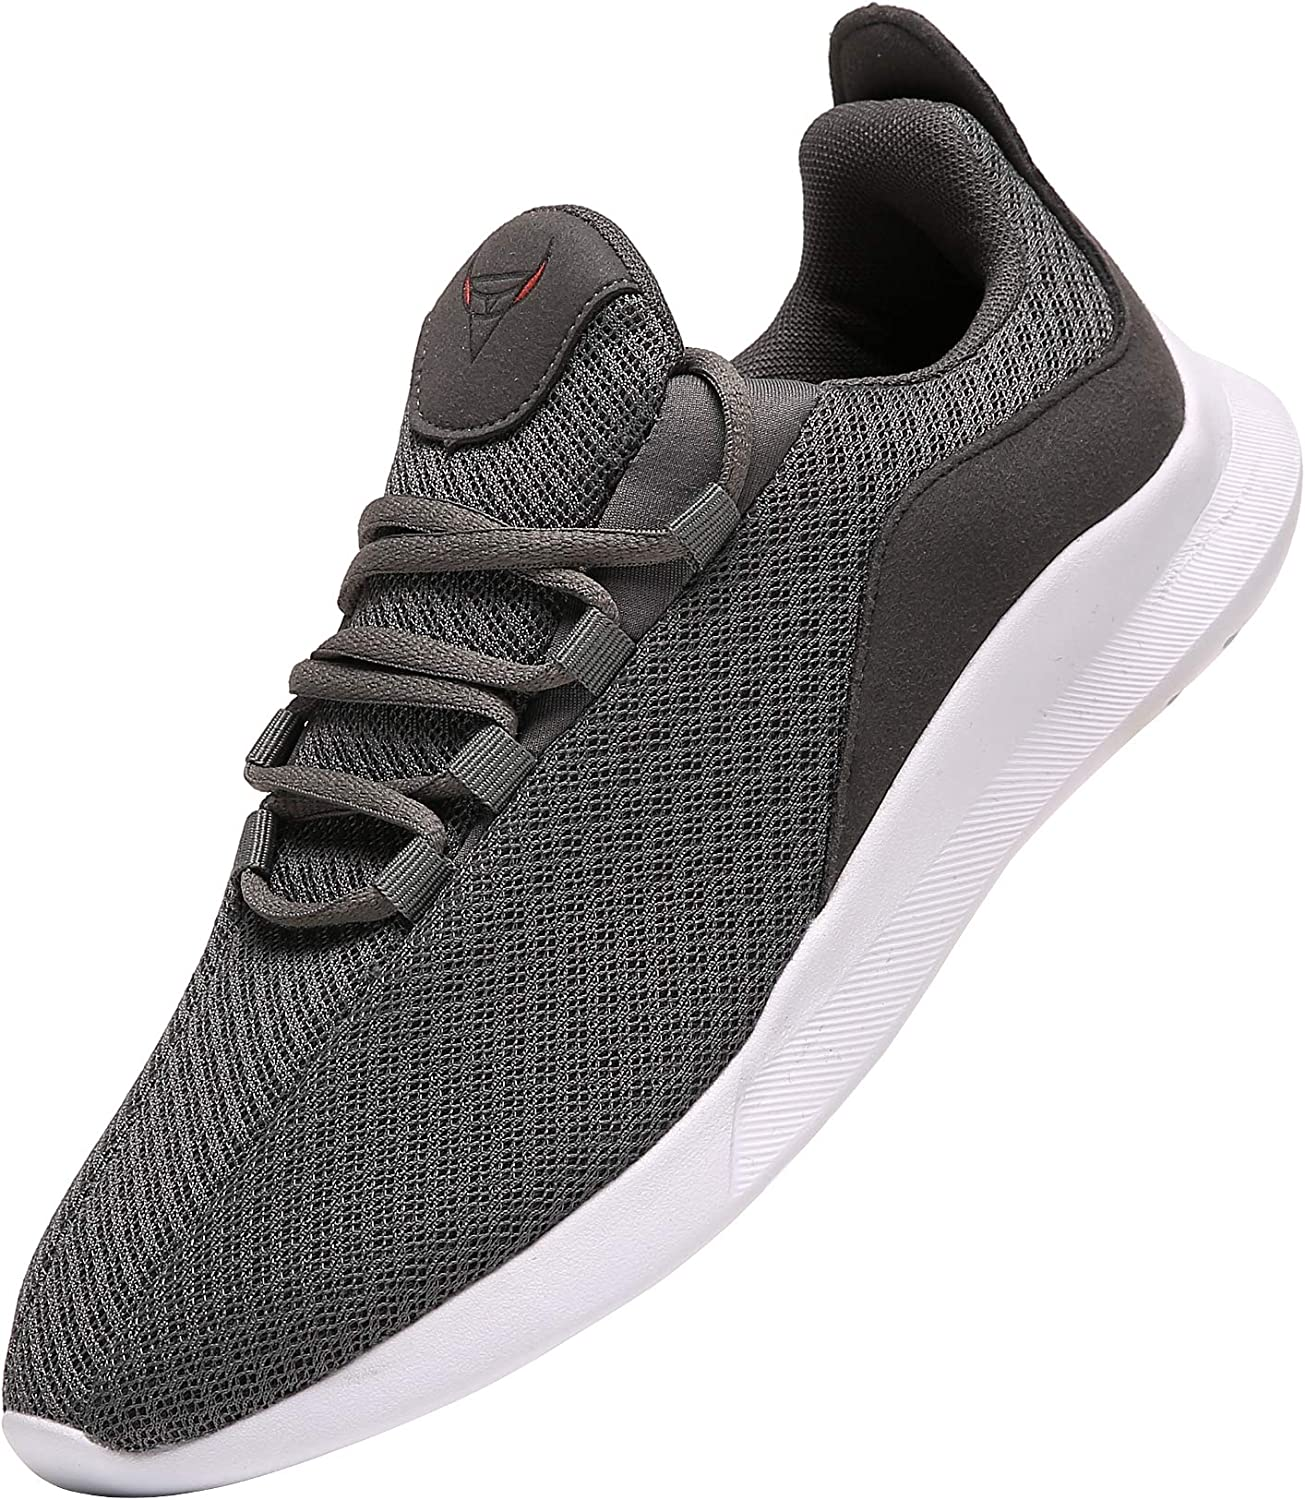 PAGBOJAS Men s Breathable Running Shoes Sport Athletic Sneakers